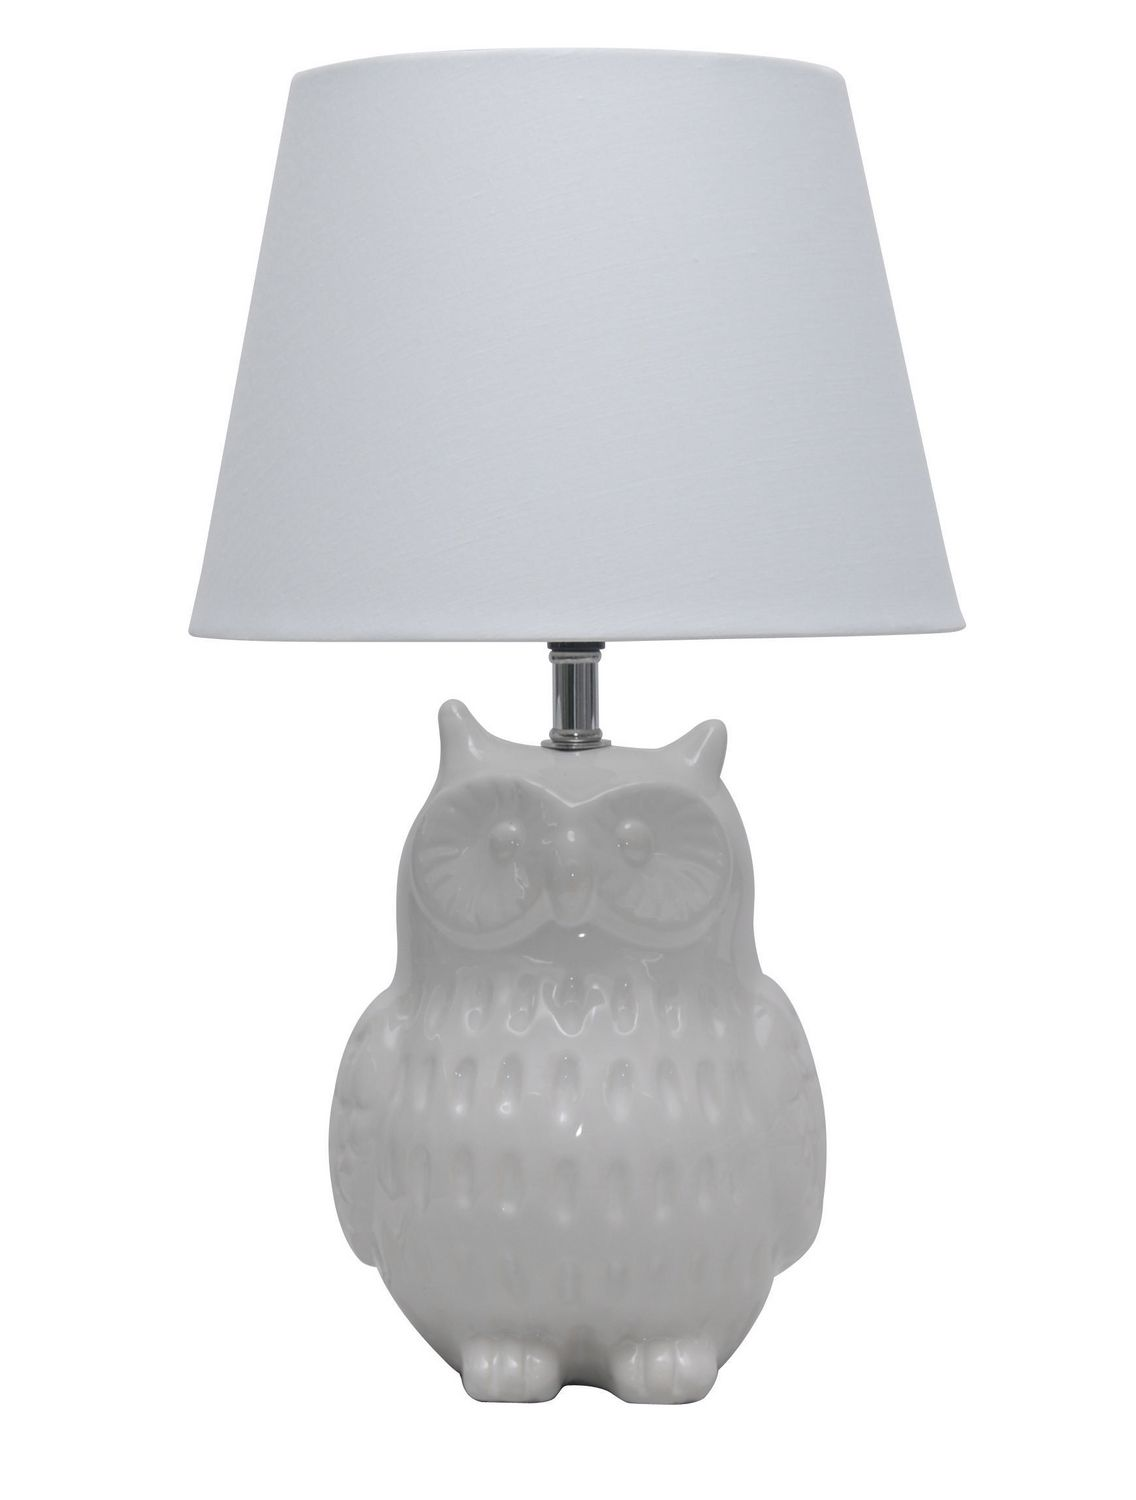 145 ceramic owl table lamp white walmart canada mozeypictures Gallery